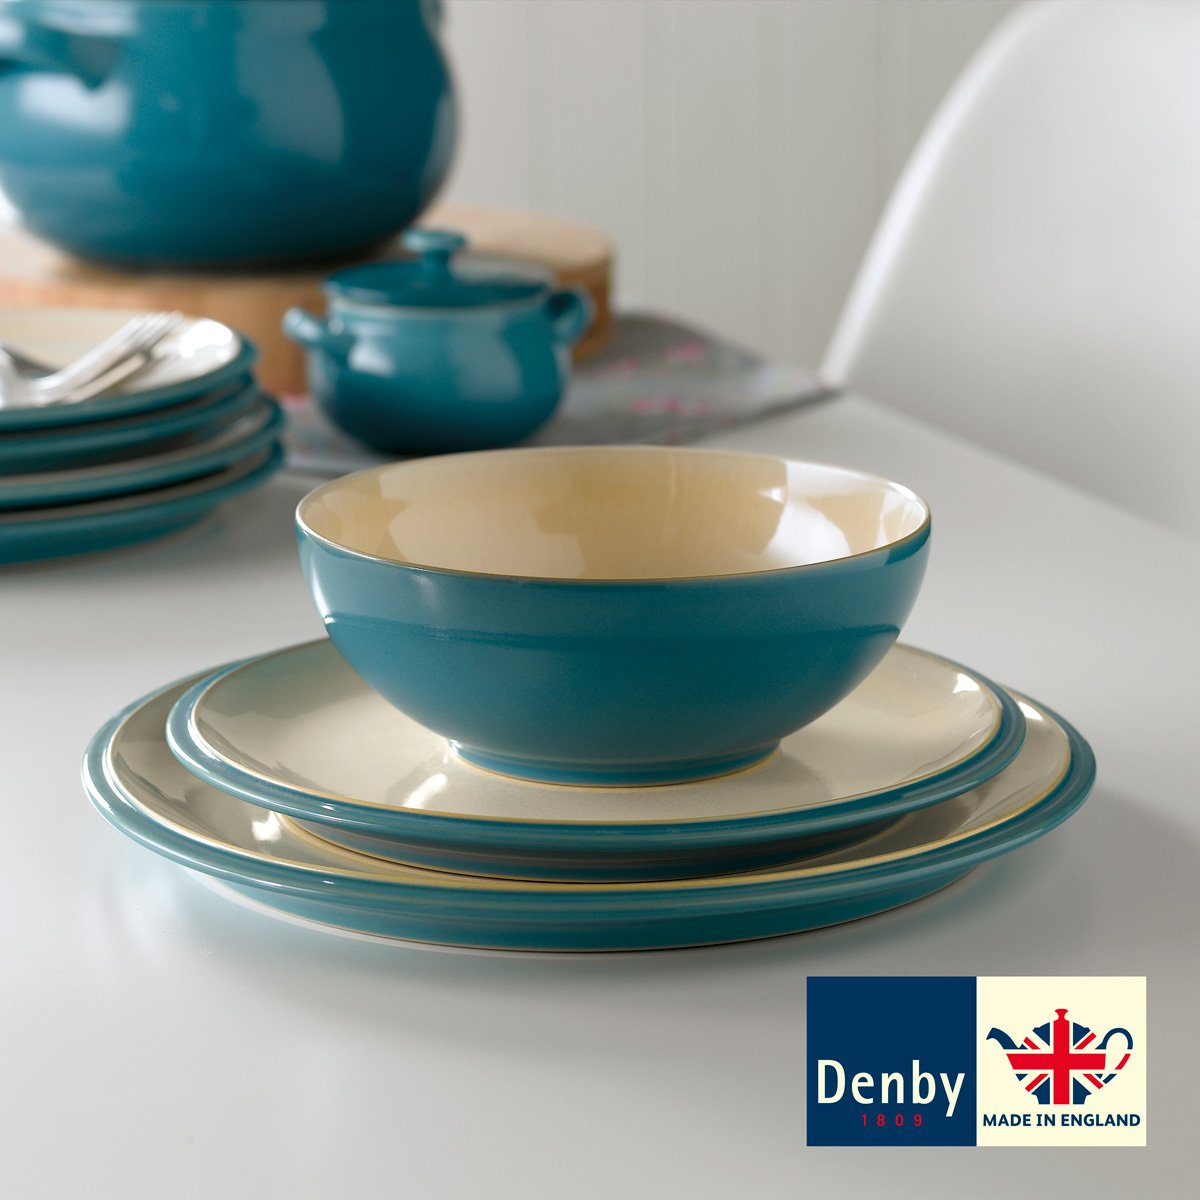 Denby Cook \u0026 Dine 12 Piece Dinner Set - Turquoise Amazon.co.uk Kitchen \u0026 Home & Denby Cook \u0026 Dine 12 Piece Dinner Set - Turquoise: Amazon.co.uk ...